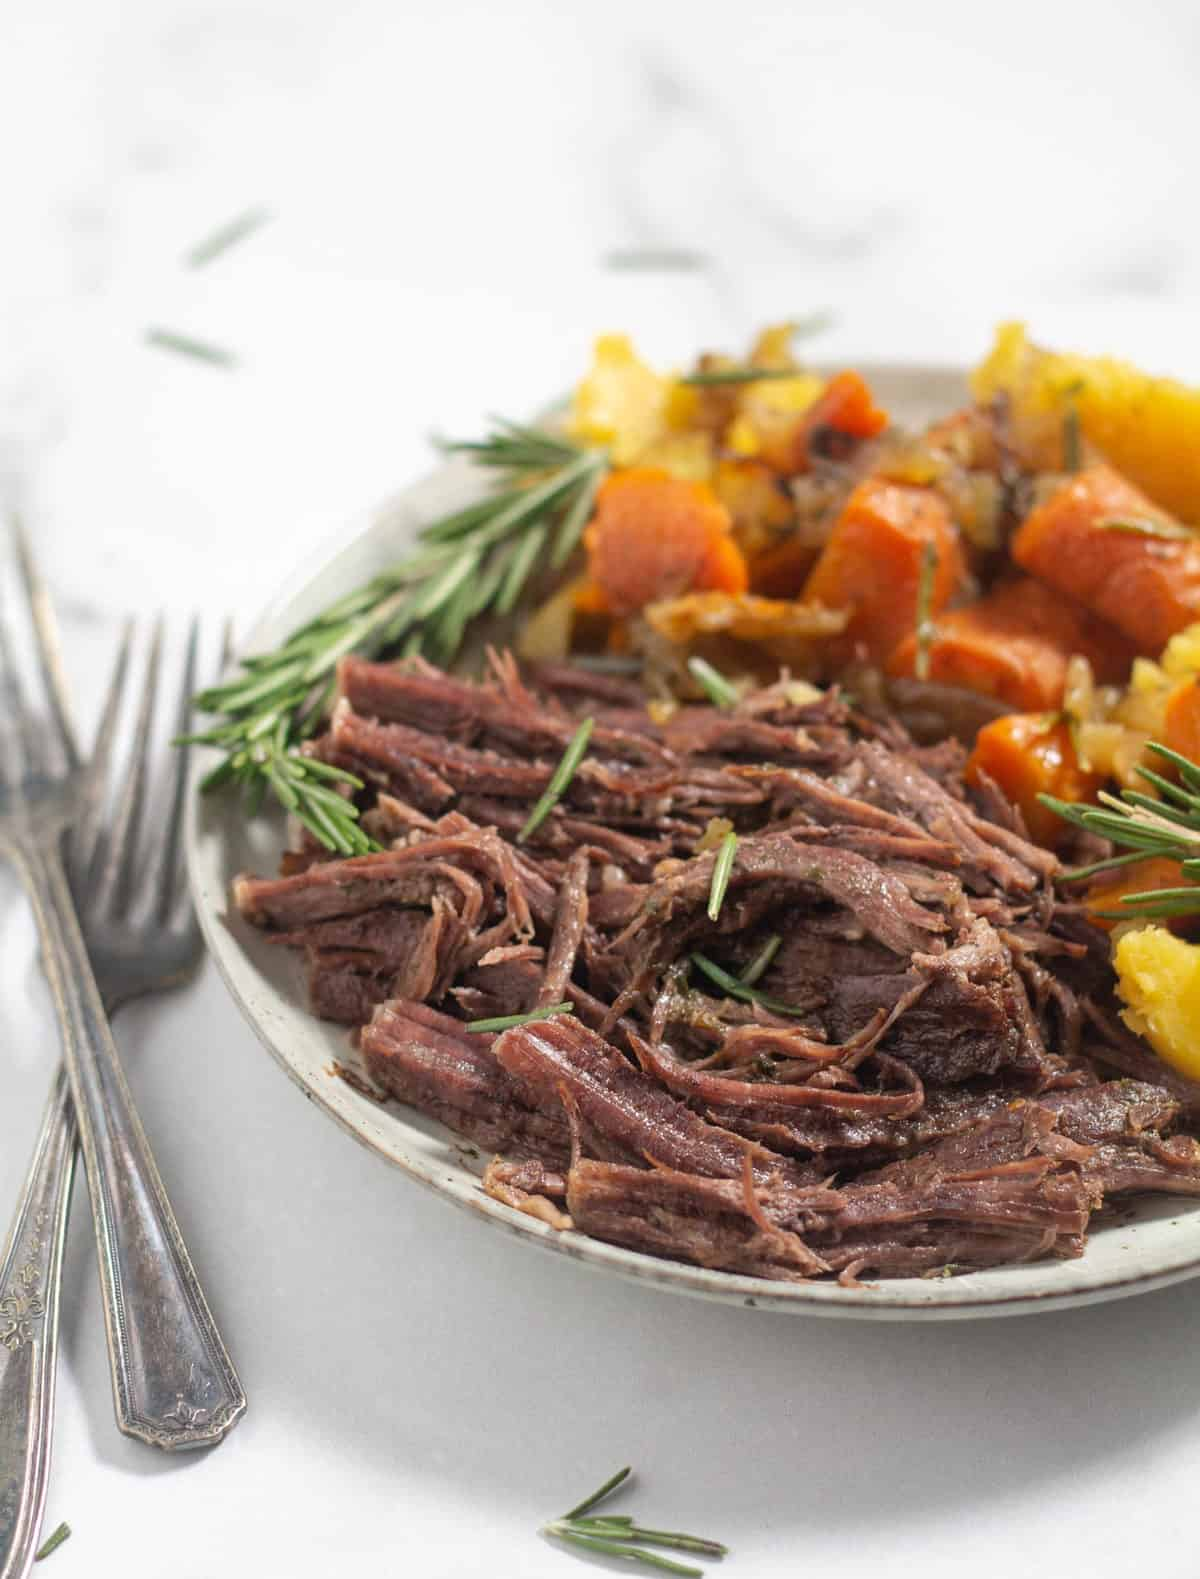 close up of shredded roast on a plate with carrots and potatoes